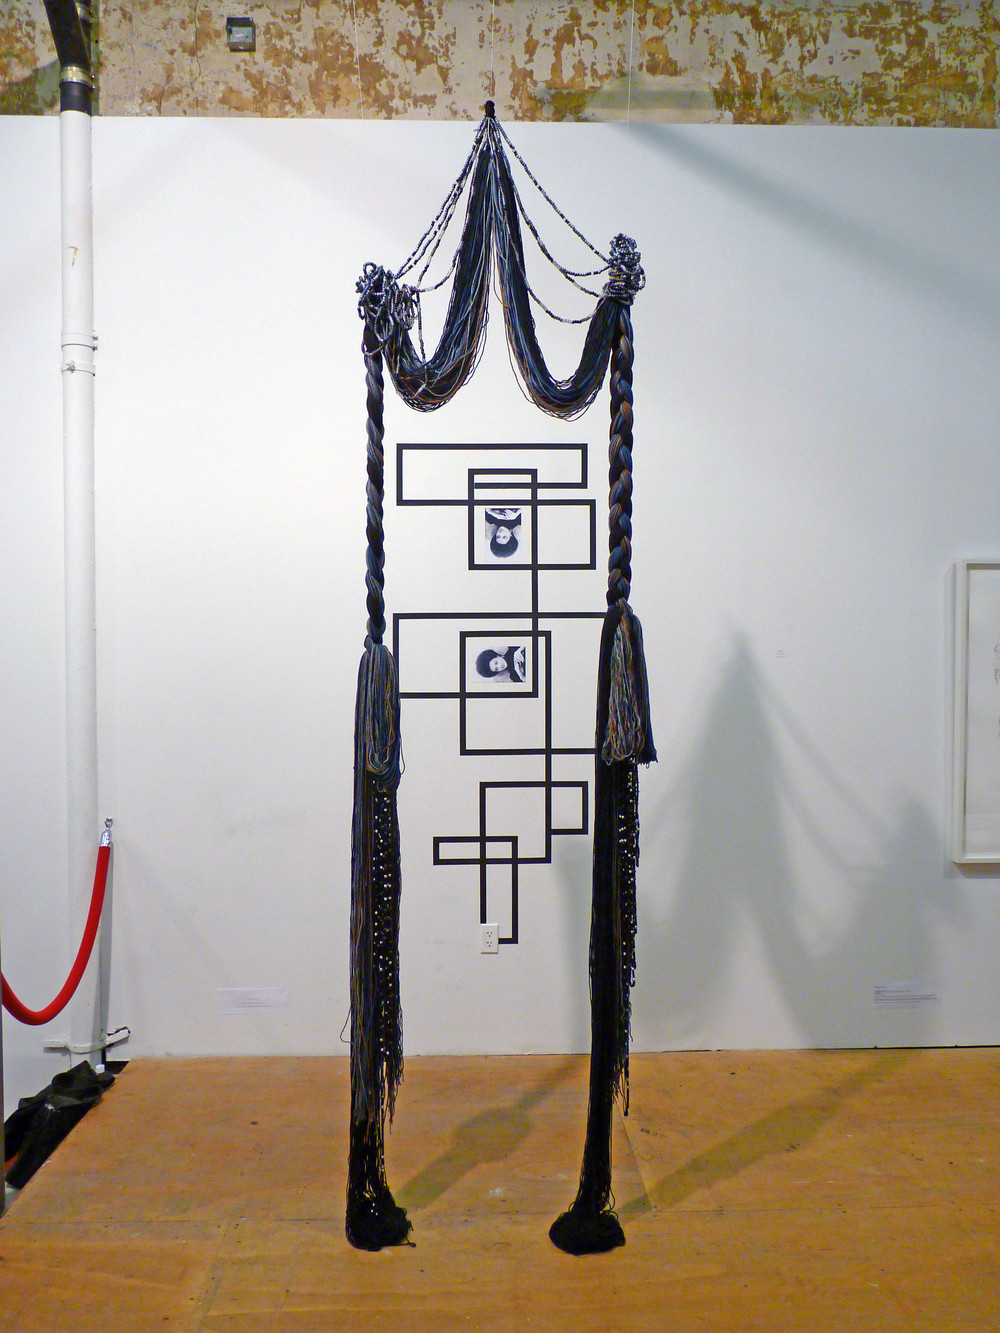 Rico Gatson and Ellie Murphy, Untitled 2010, Gaffers tape, inkjet prints, Acrylic and wool yarn, plastic pony beads, monofilament fishing line, 3' x 11' x 3' (Installtion from Collective Show)